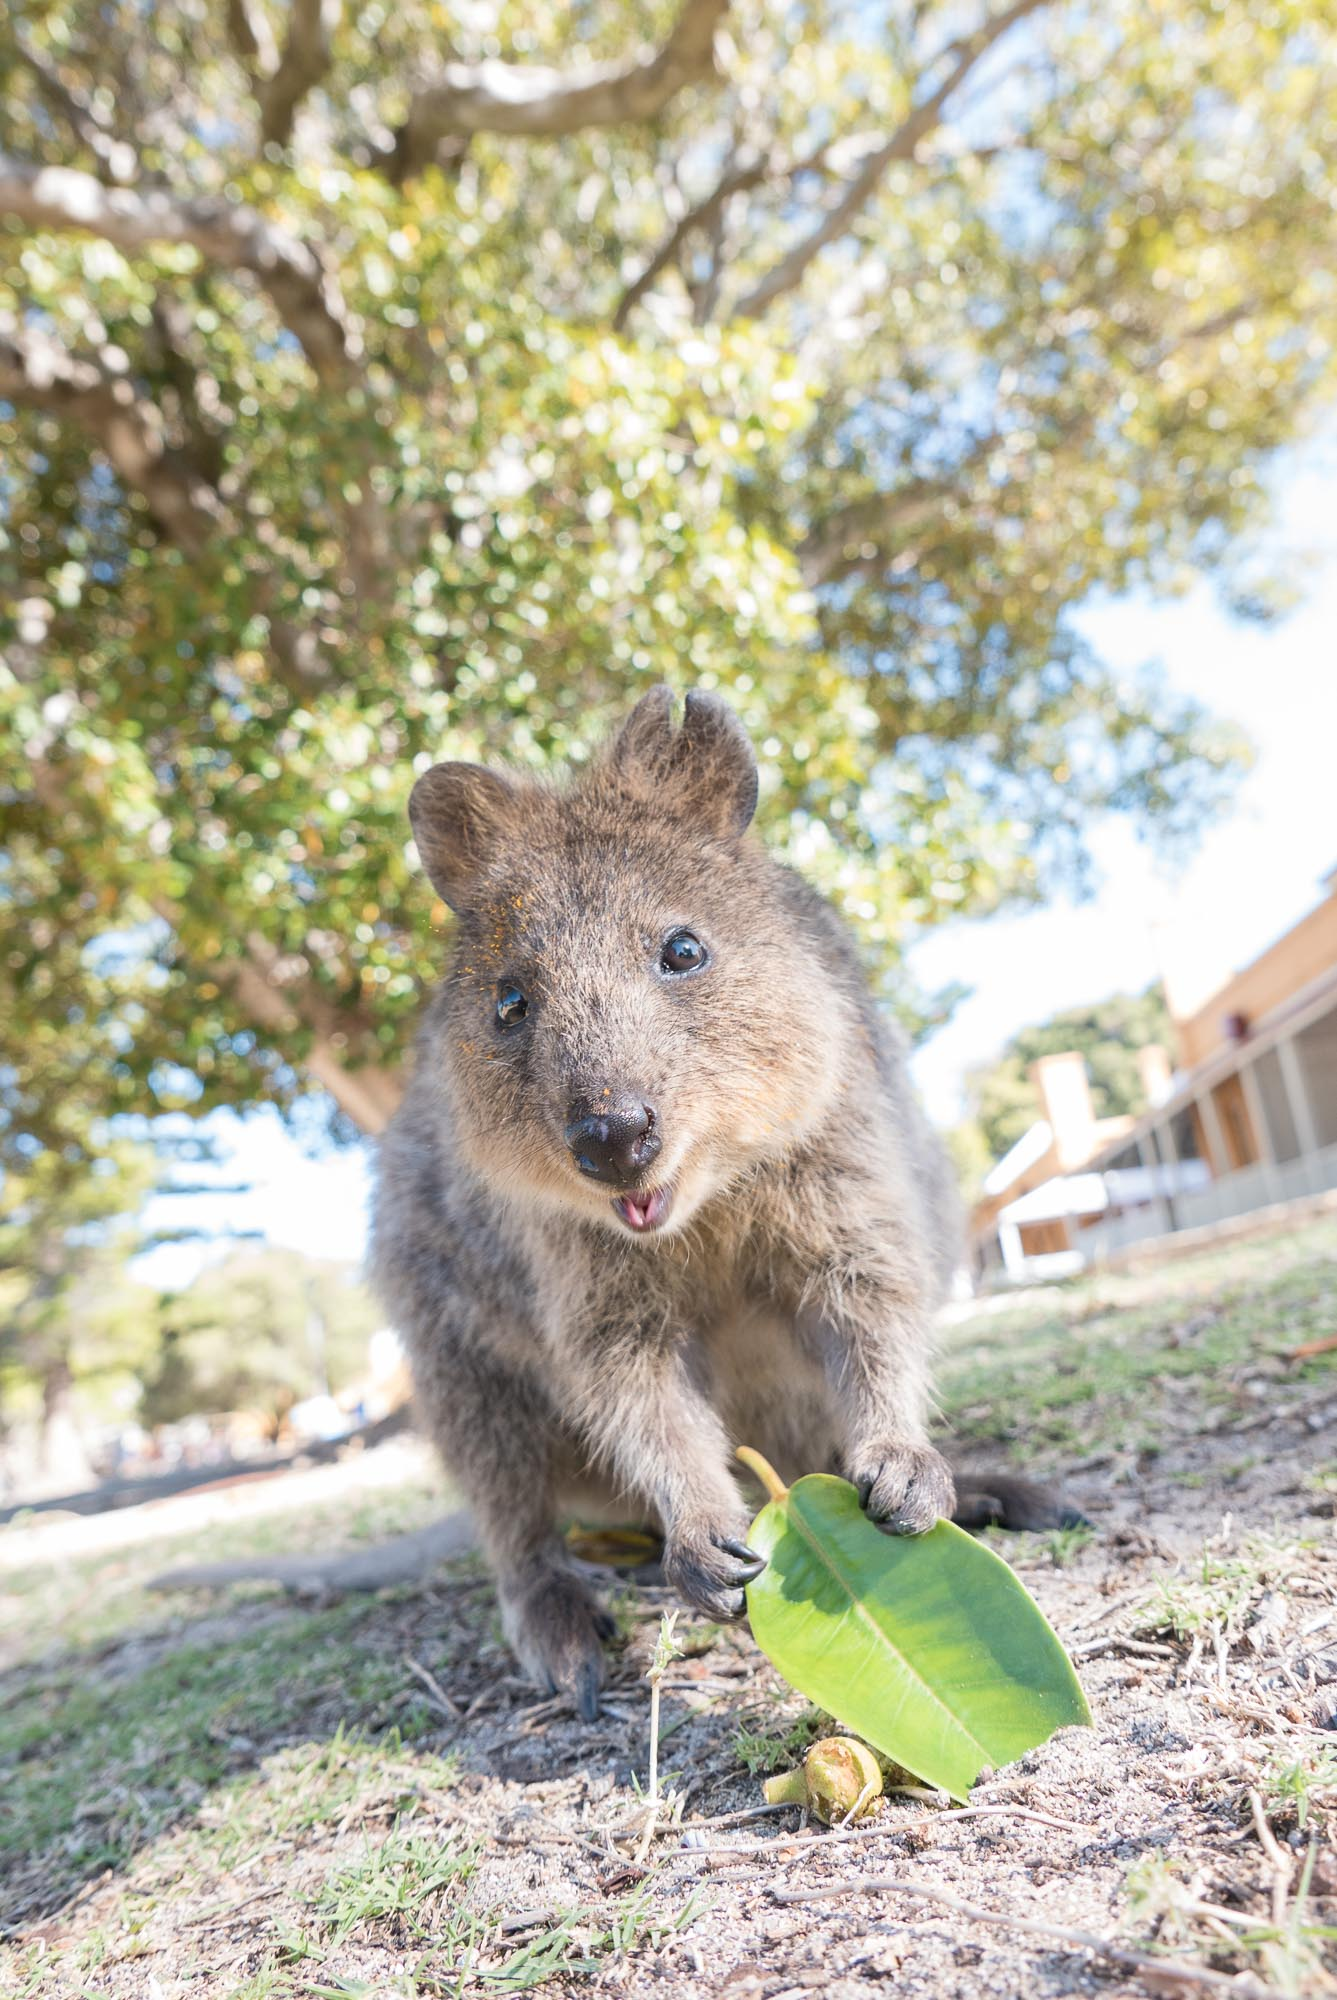 Quokka at Thomson Bay, Rottnest Island